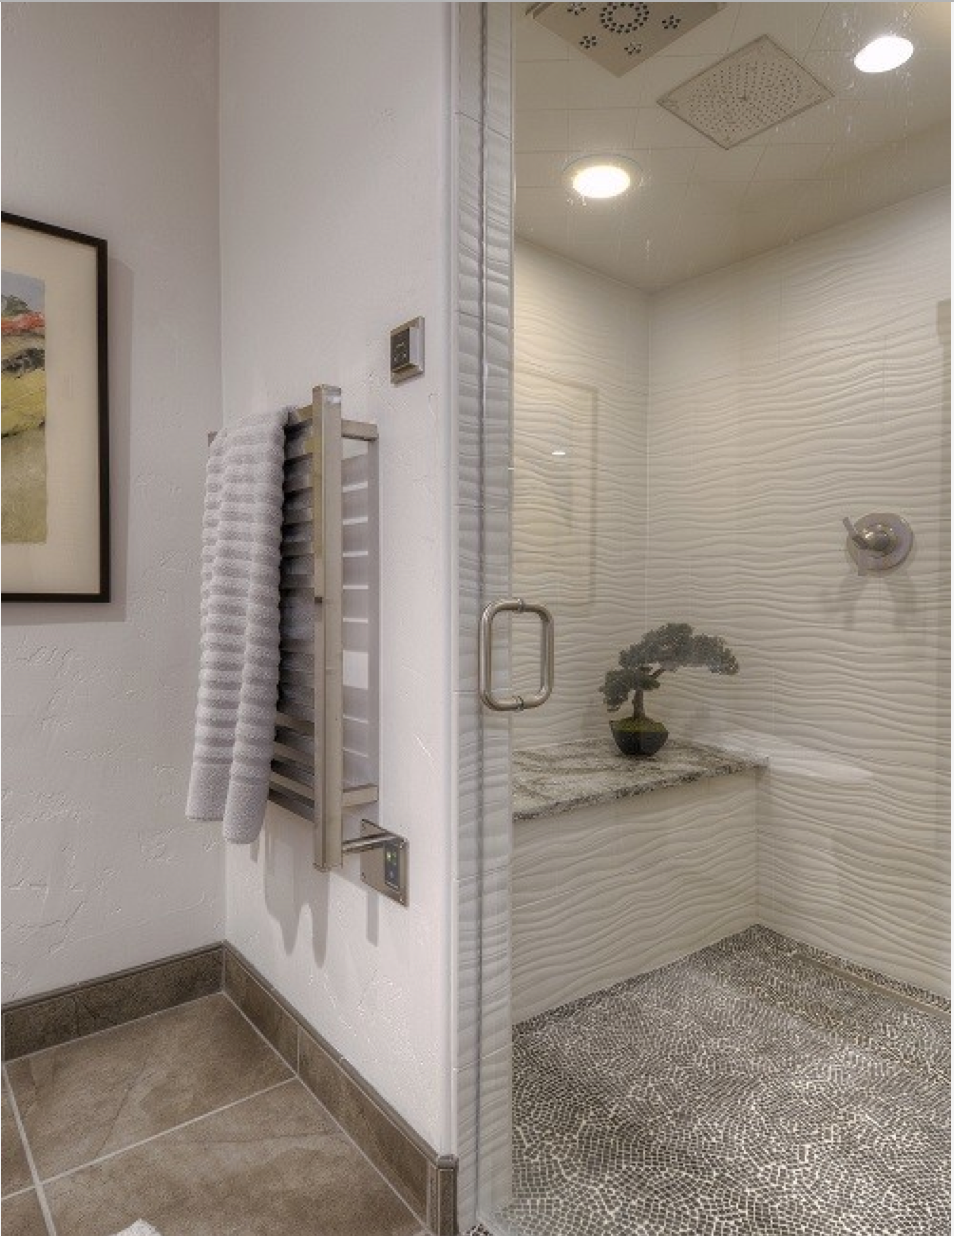 Rain shower head, seat in shower, large enough shower http://www ...